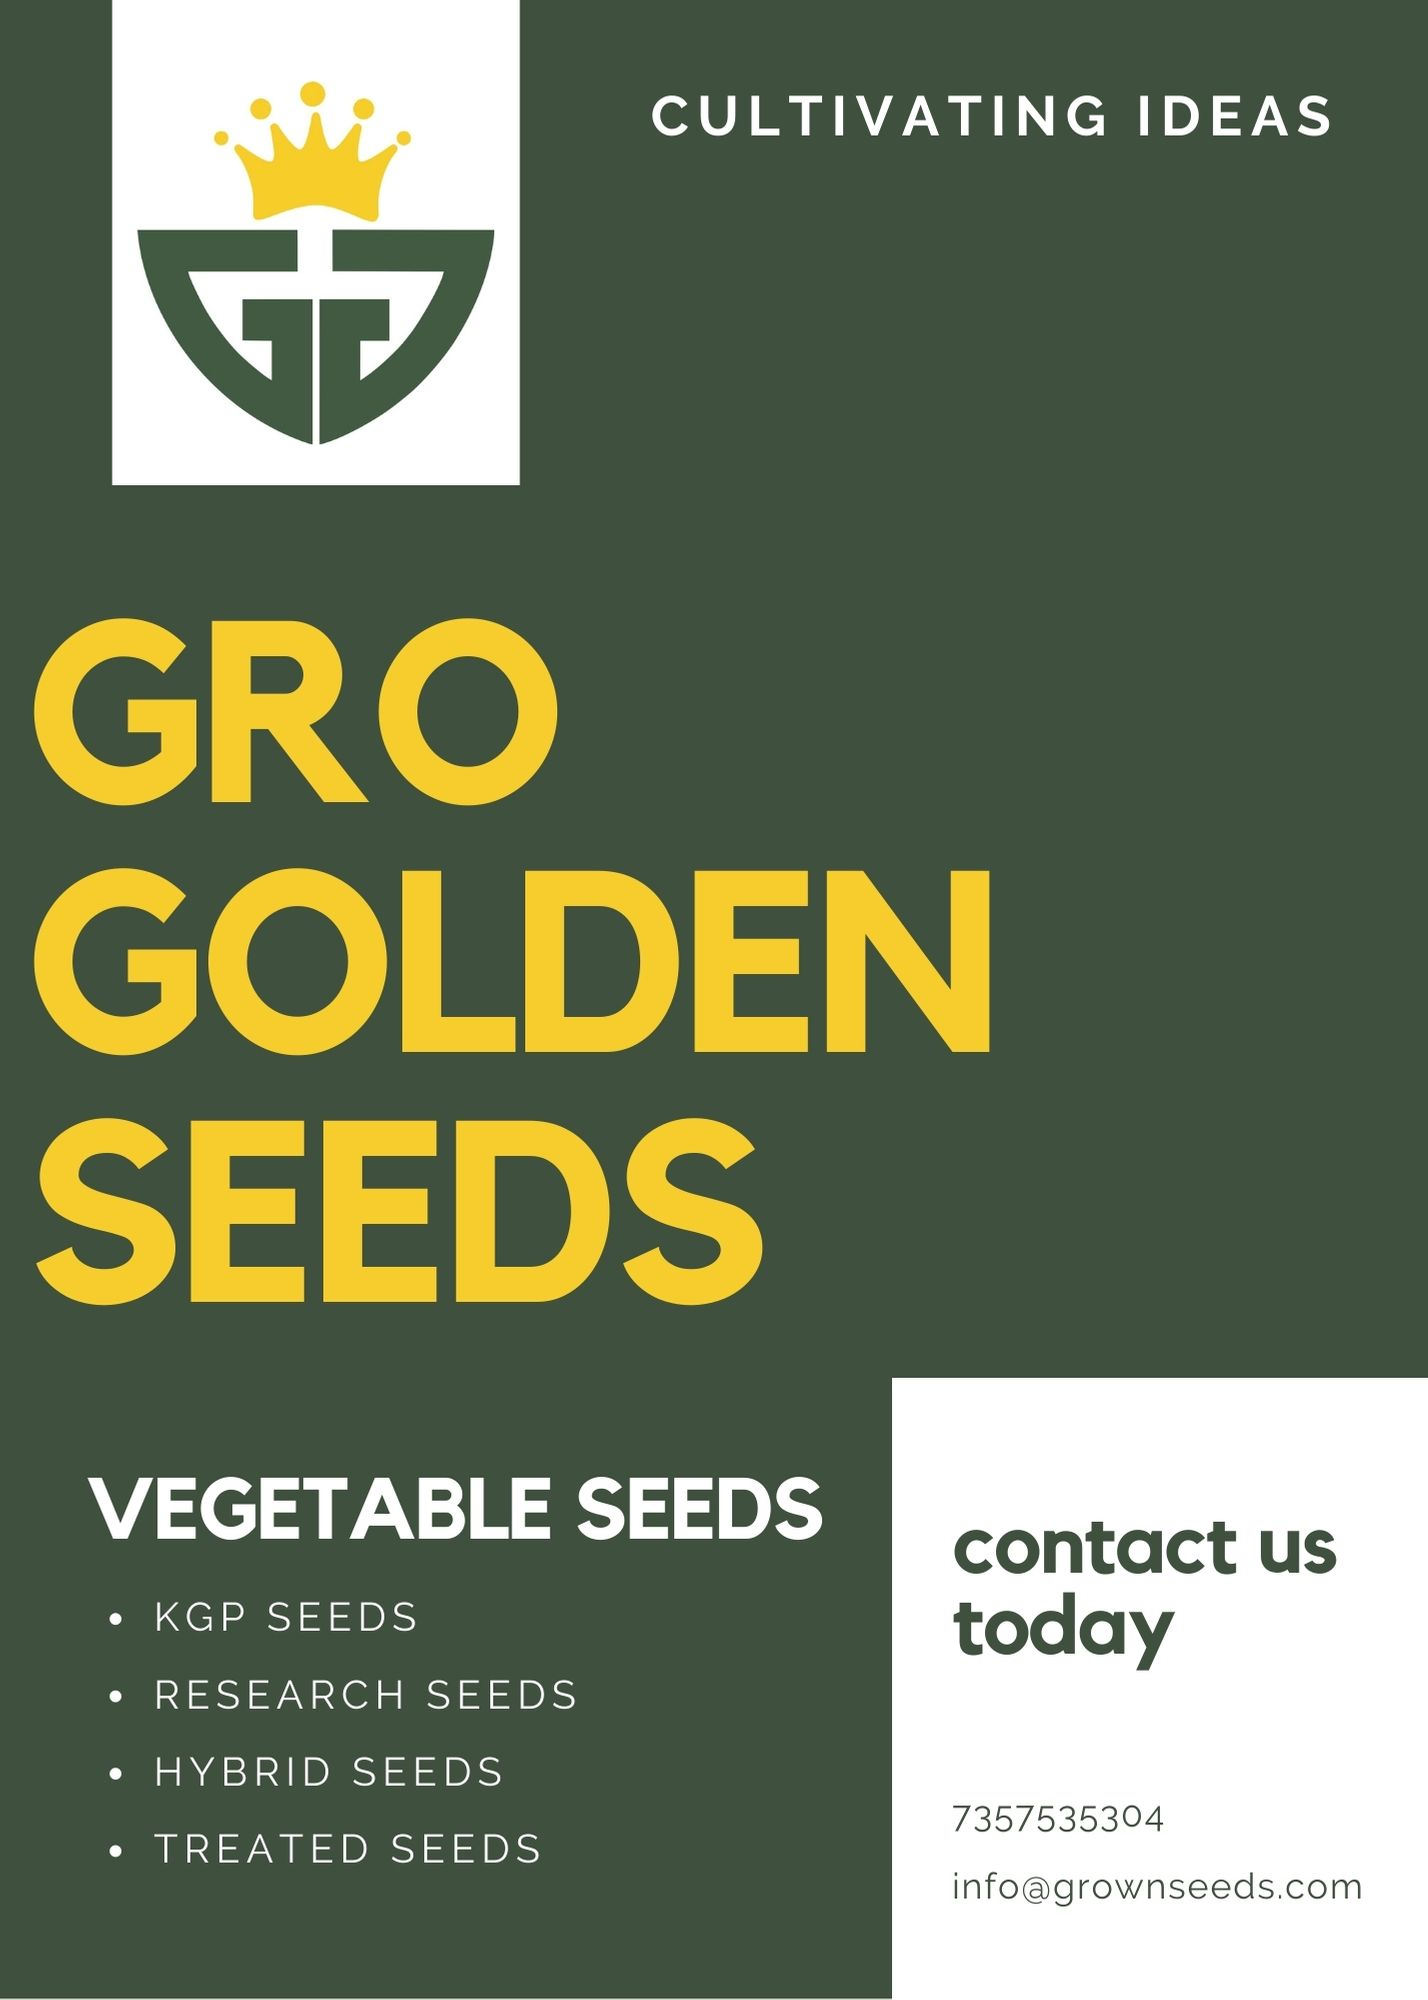 Research Vegetable Seeds